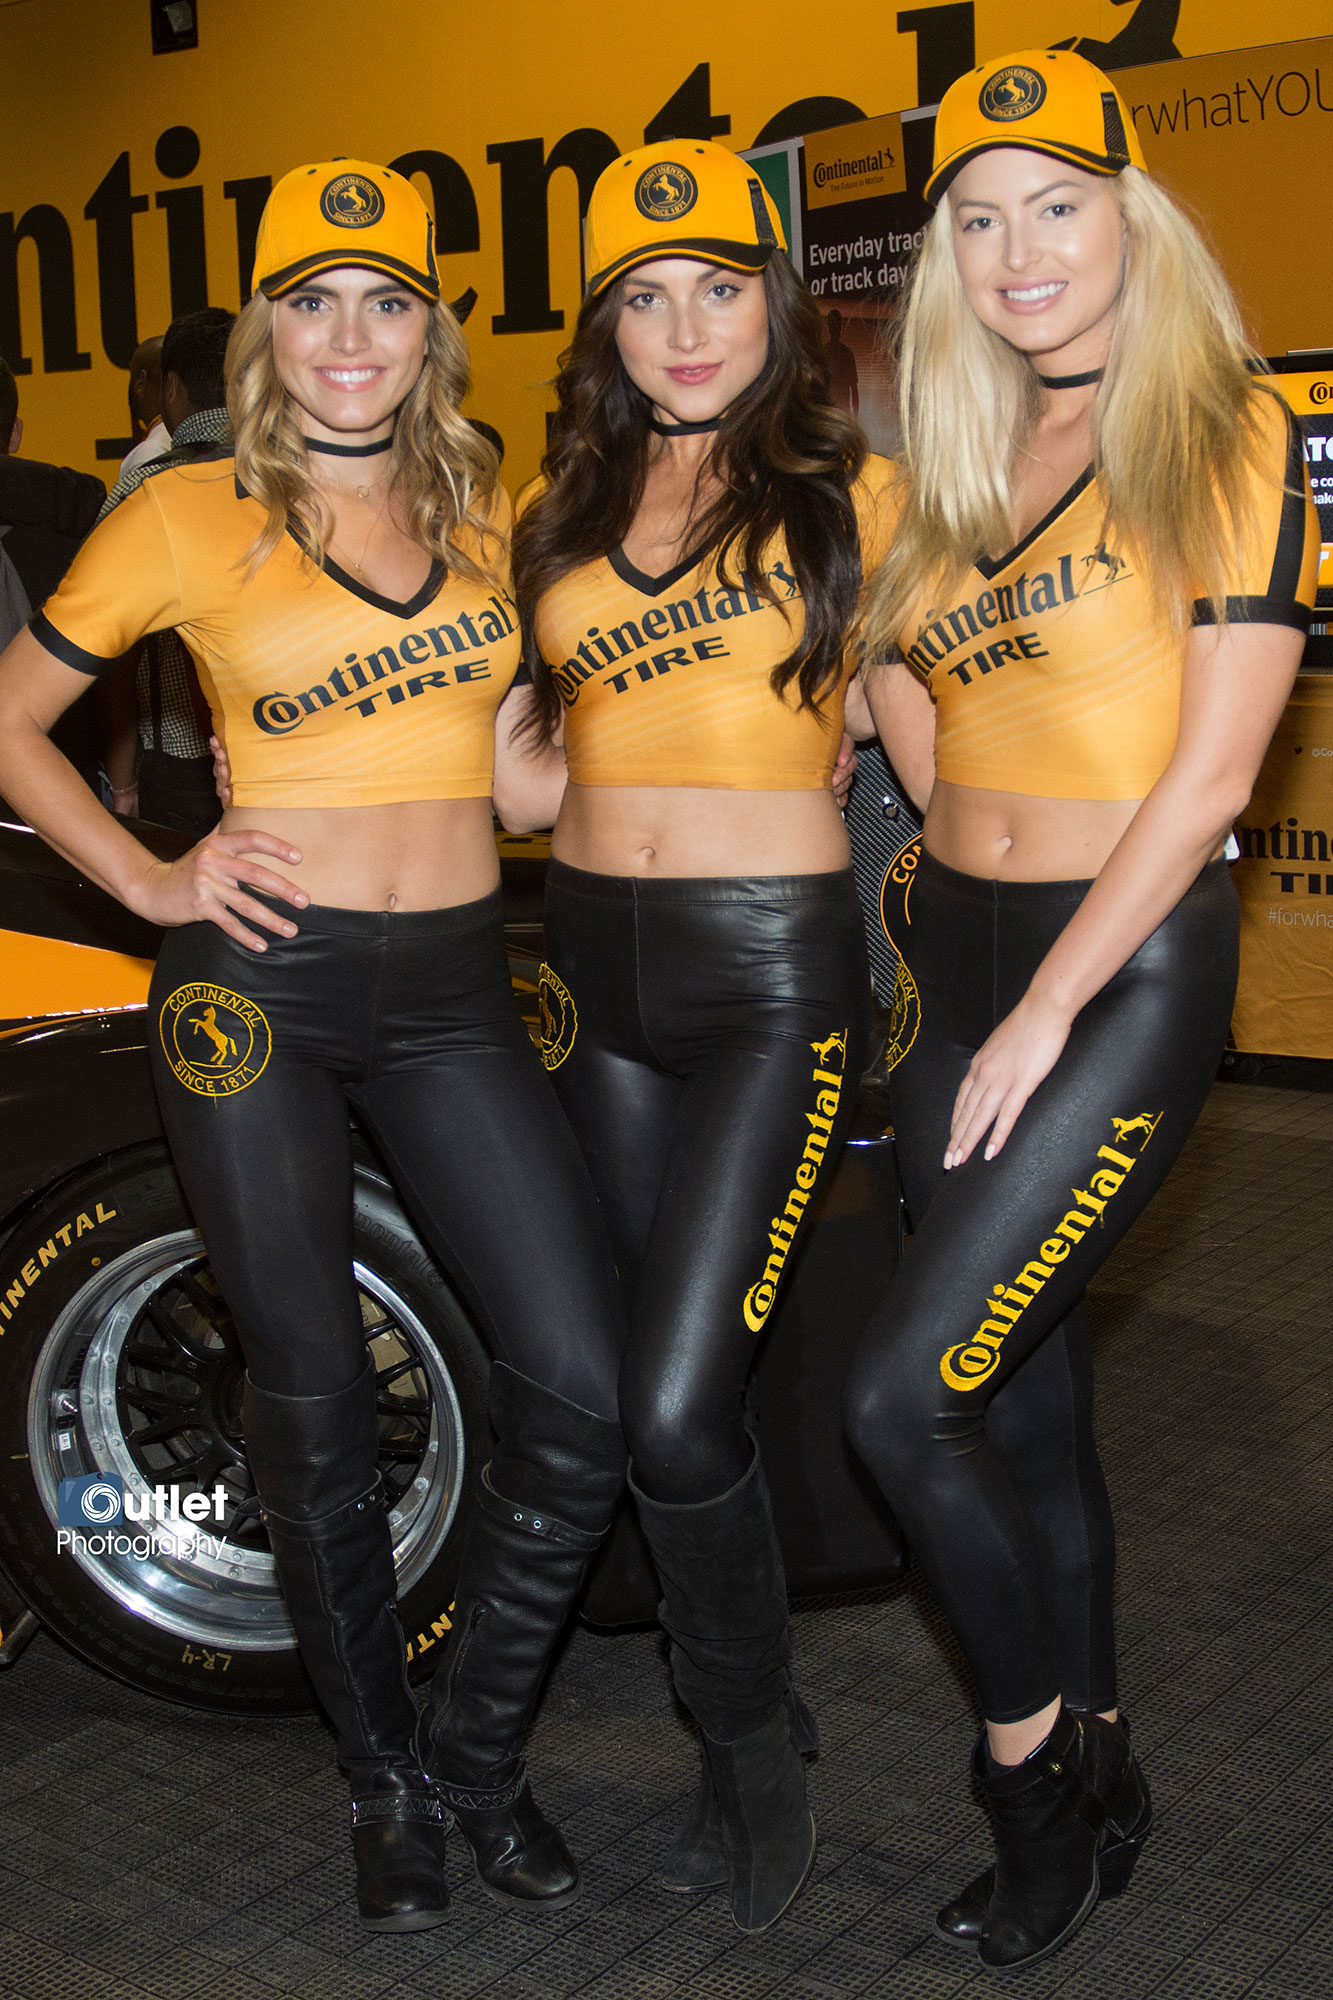 Continental Tire Promo Girls1